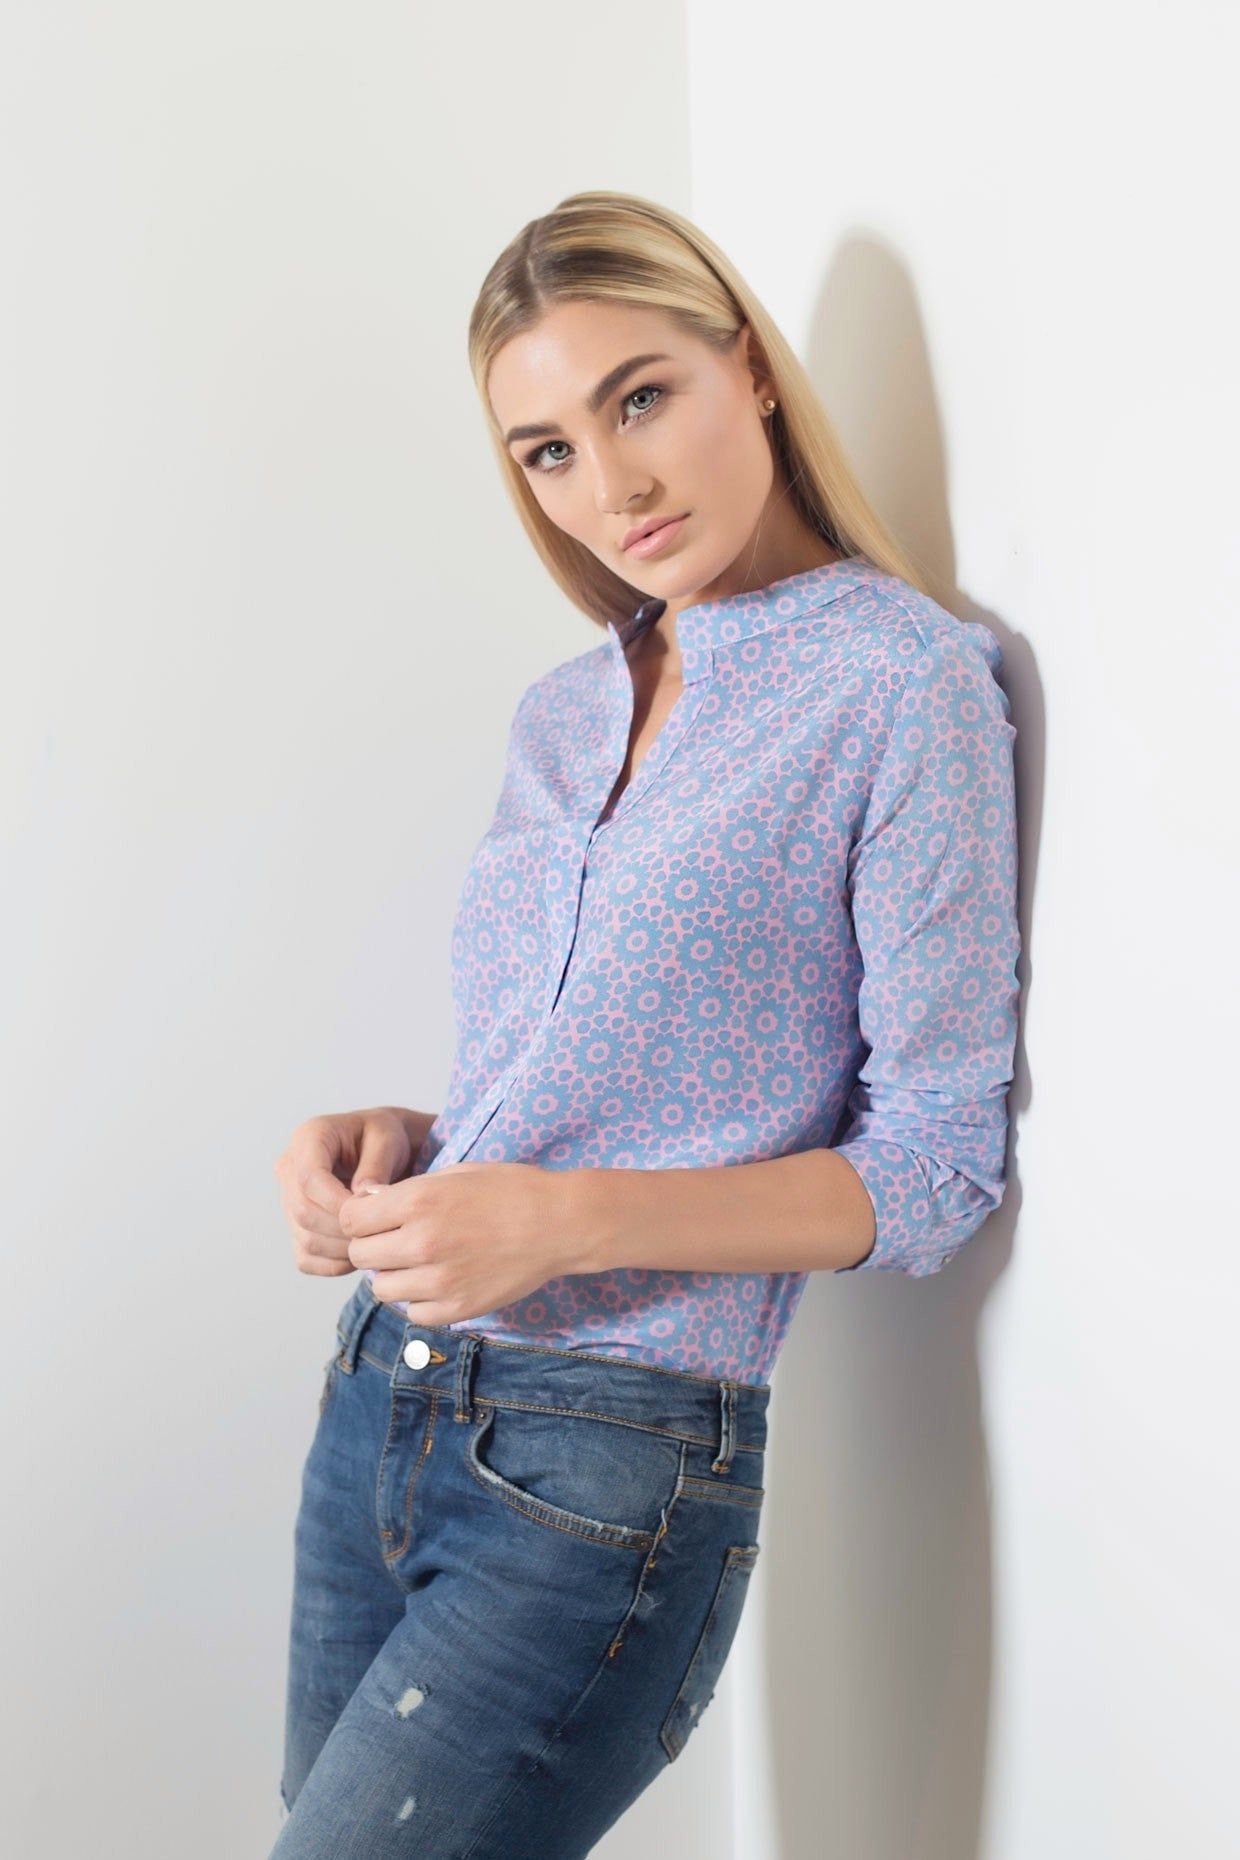 Muse Silk Blouse - Pink Blue Mantra Print Blouses - artTECA